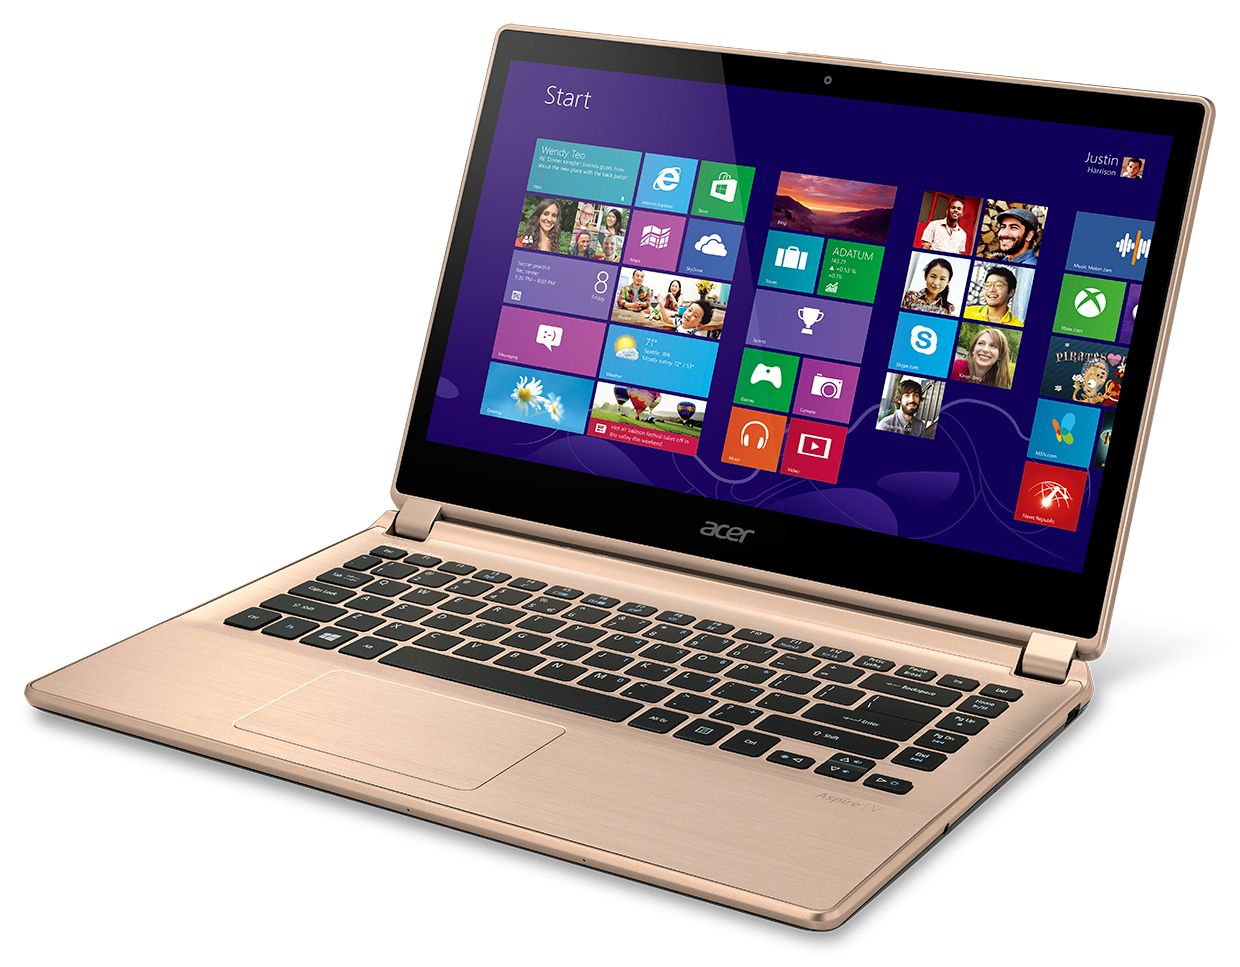 V7 Series Ultrabooks